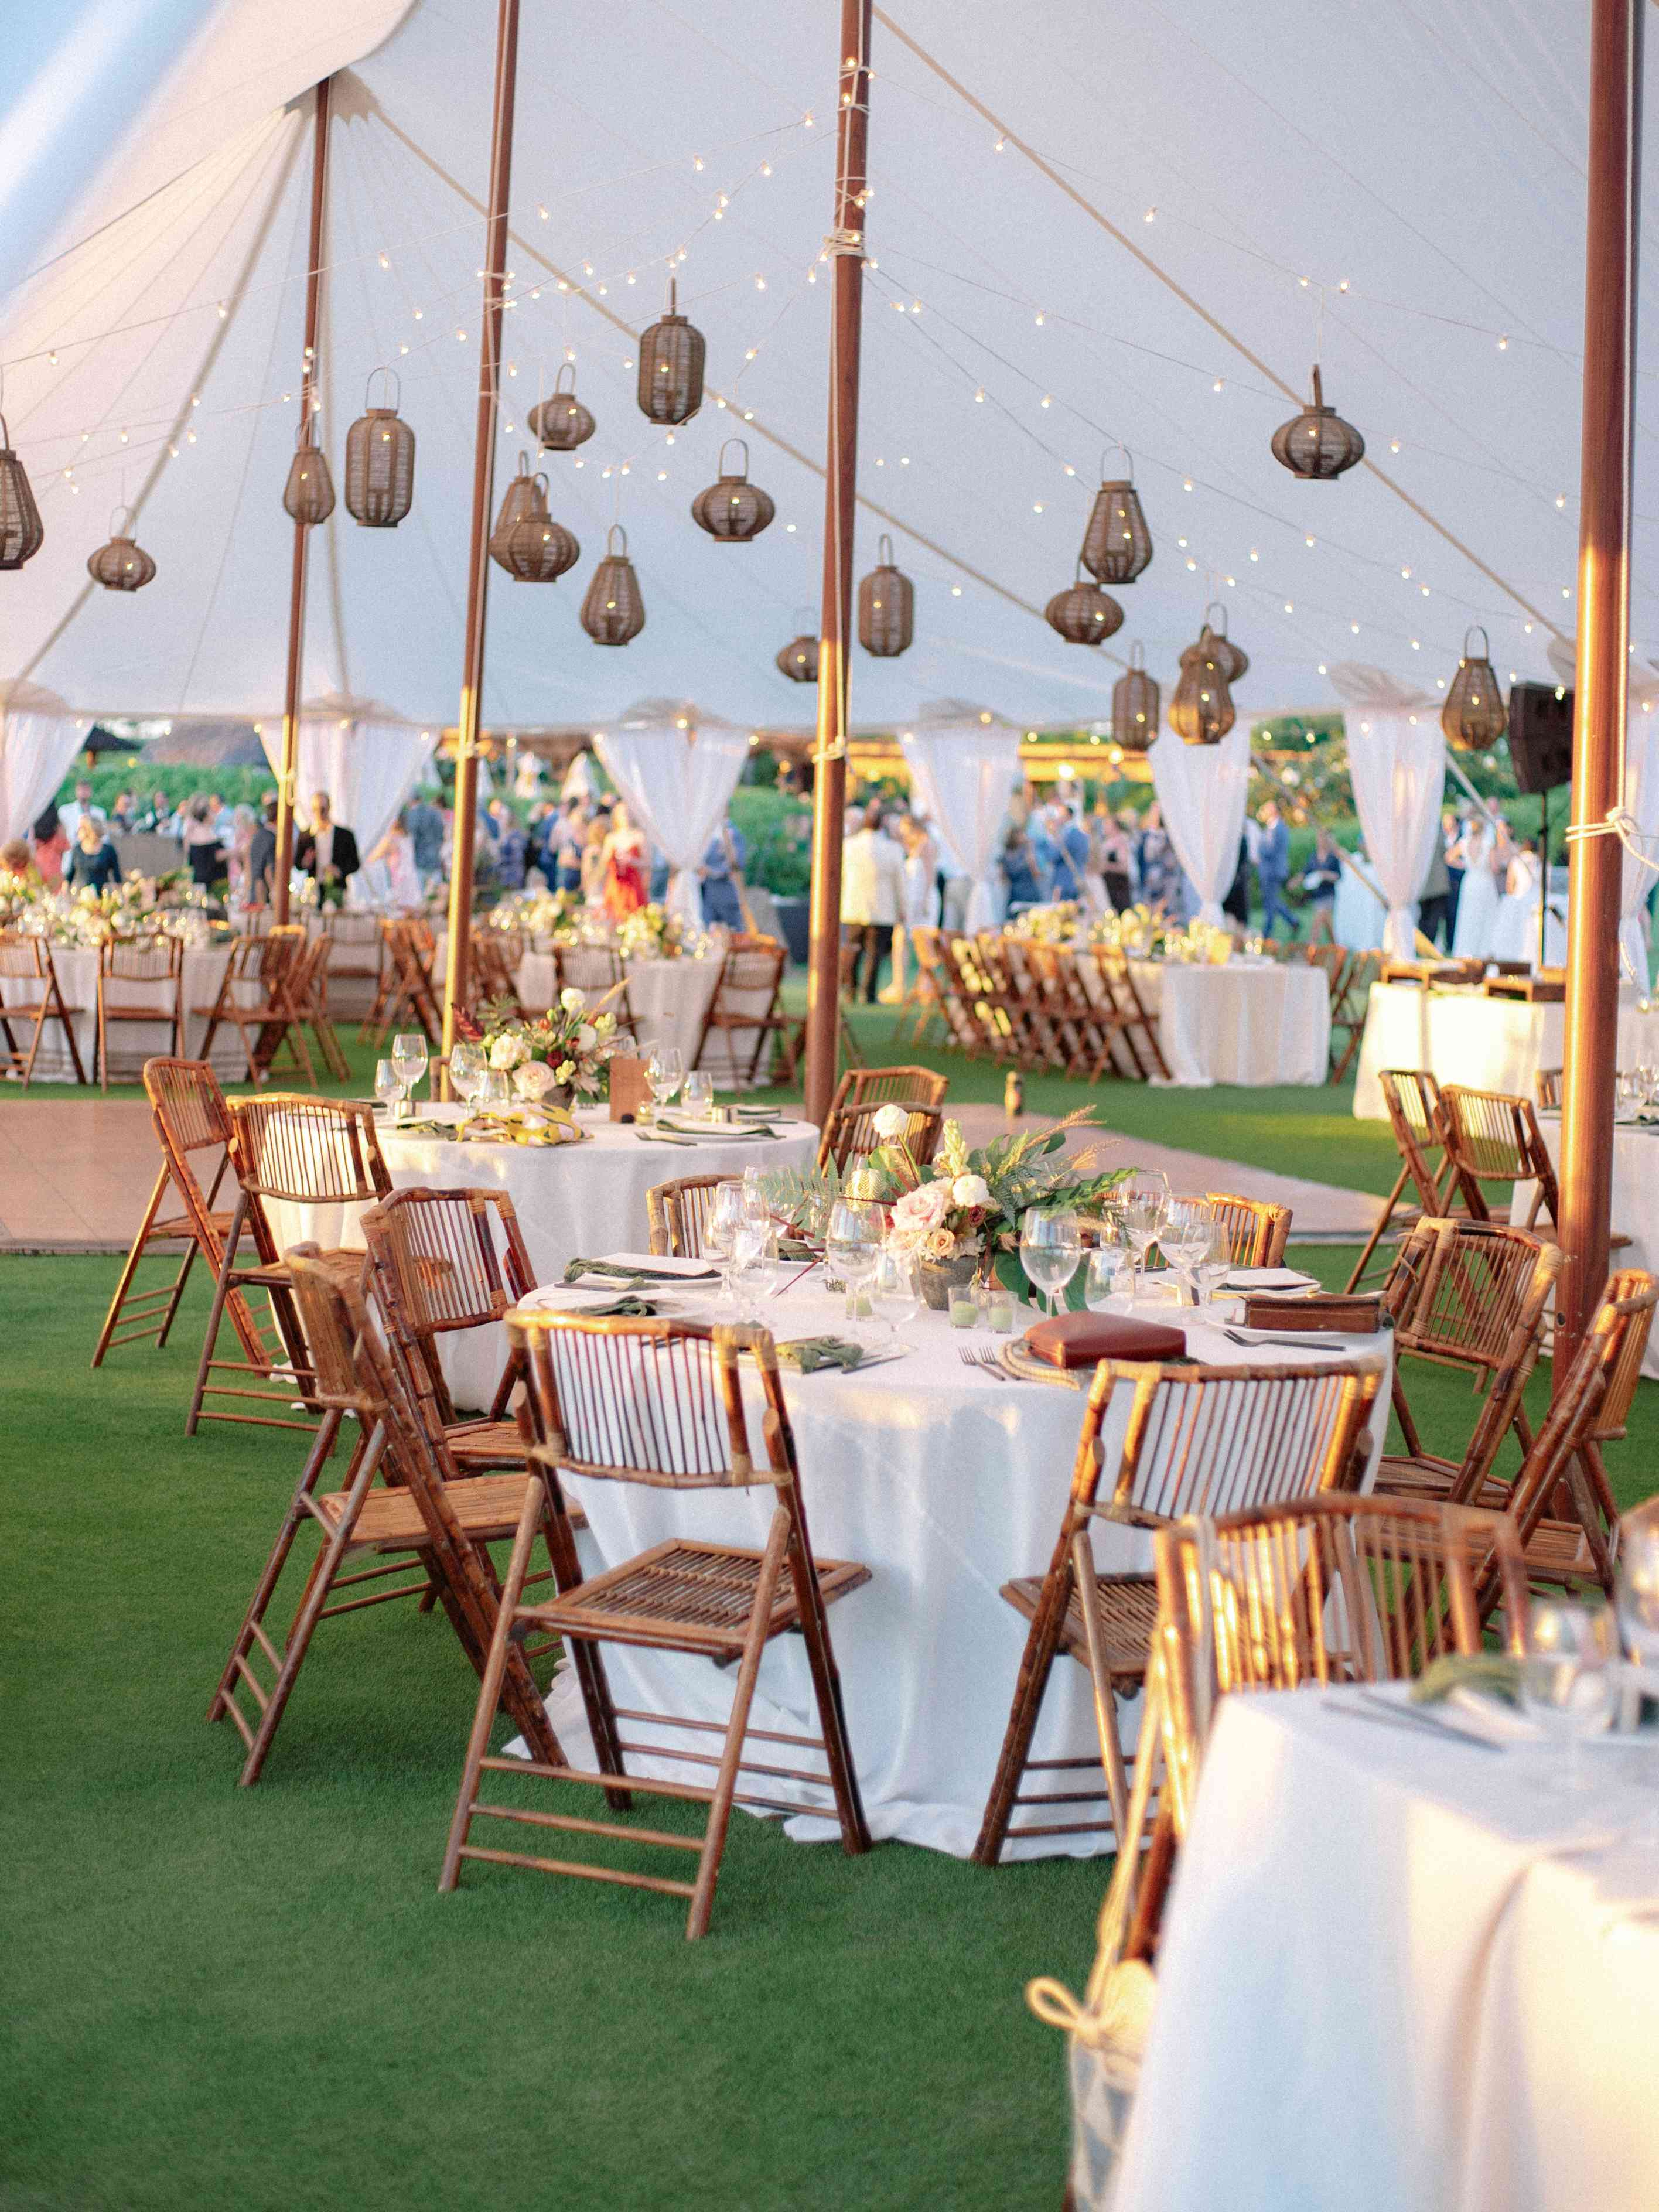 The reception tent at sunset